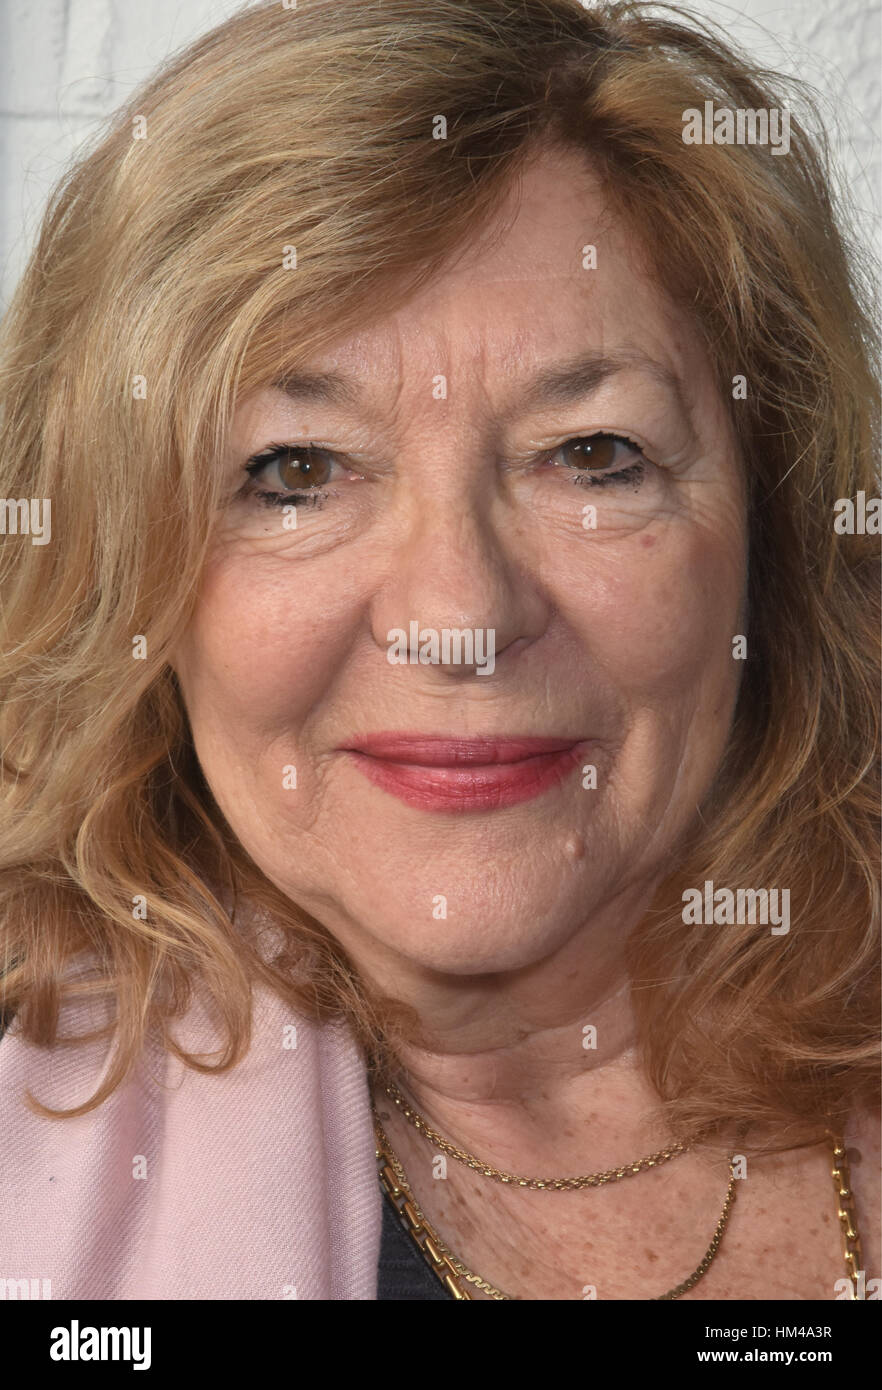 Hot Carol Drinkwater naked photo 2017